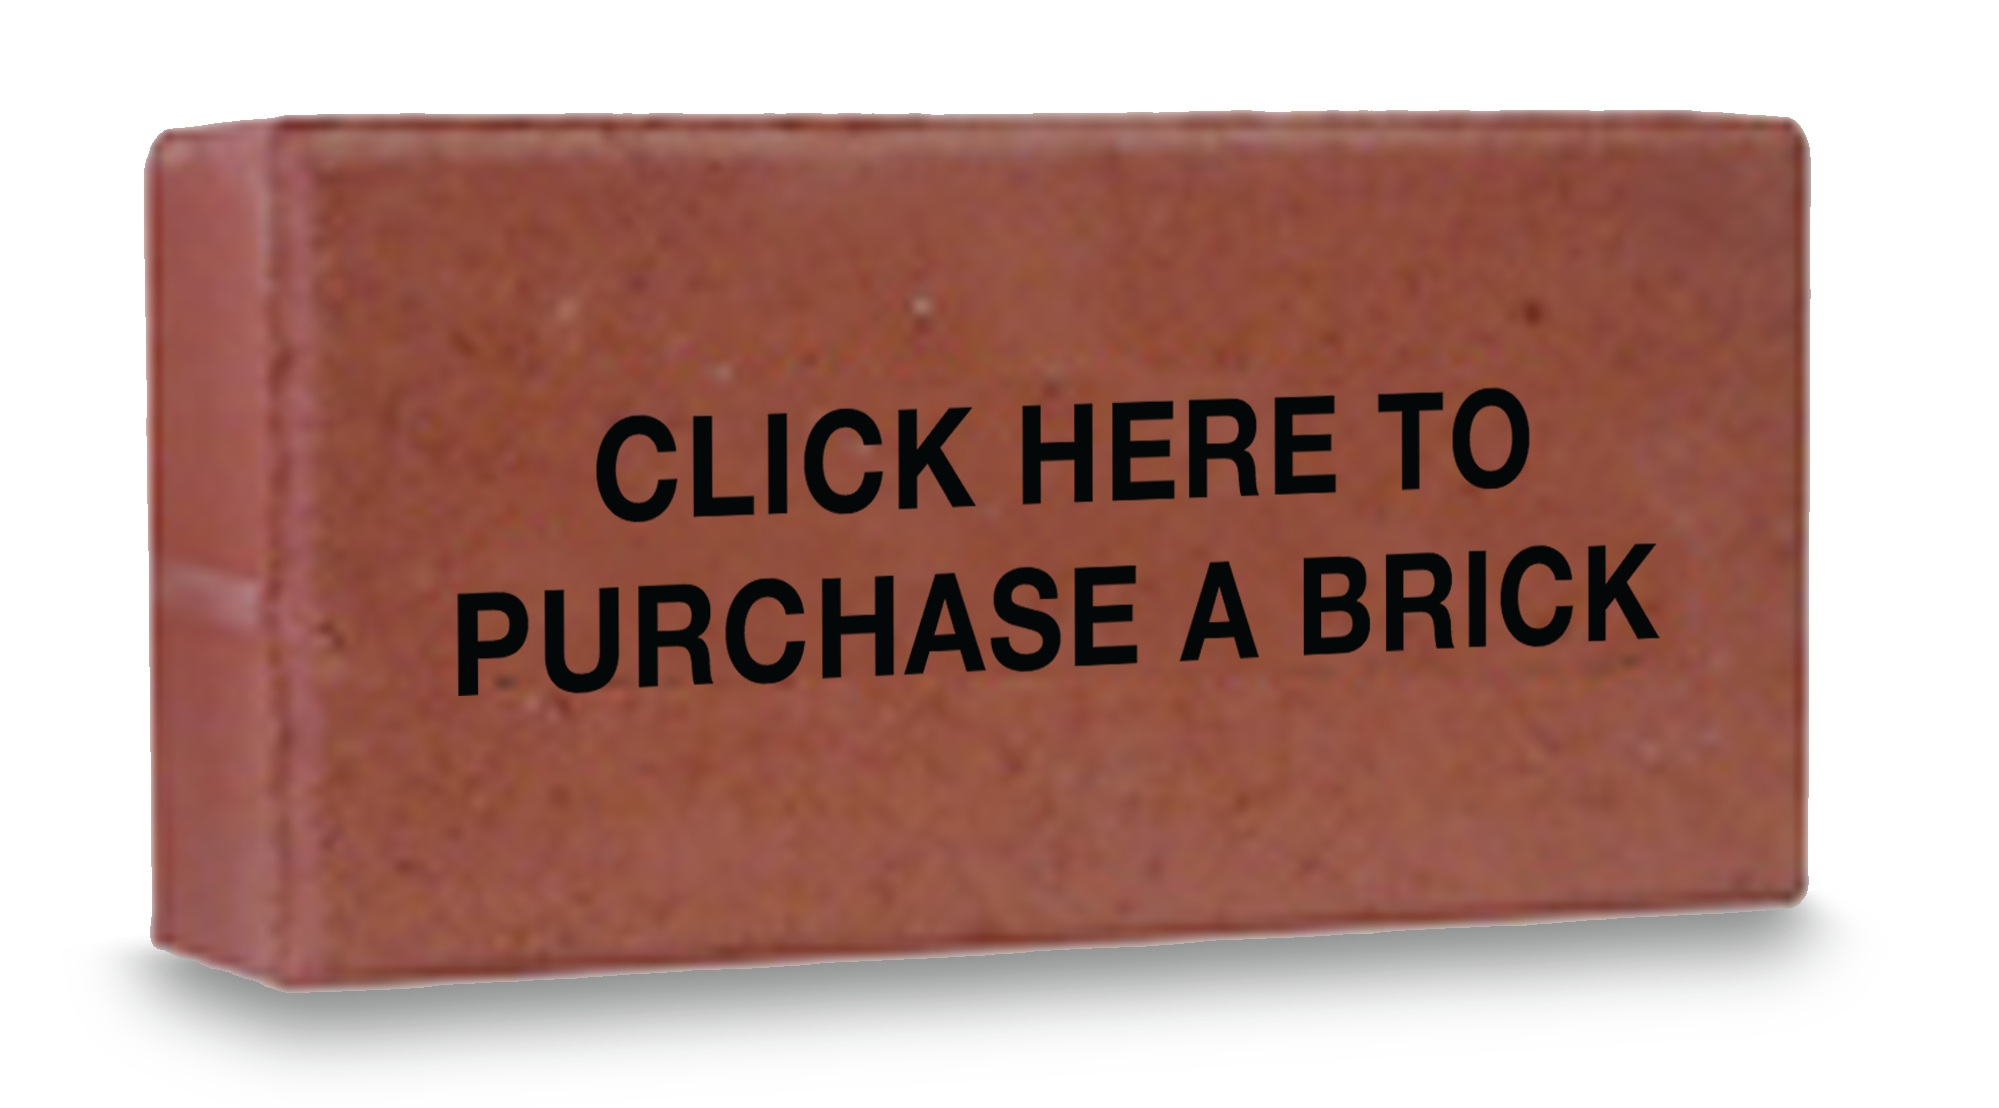 Brick+-Click+To+Purchase+%281%29.jpg